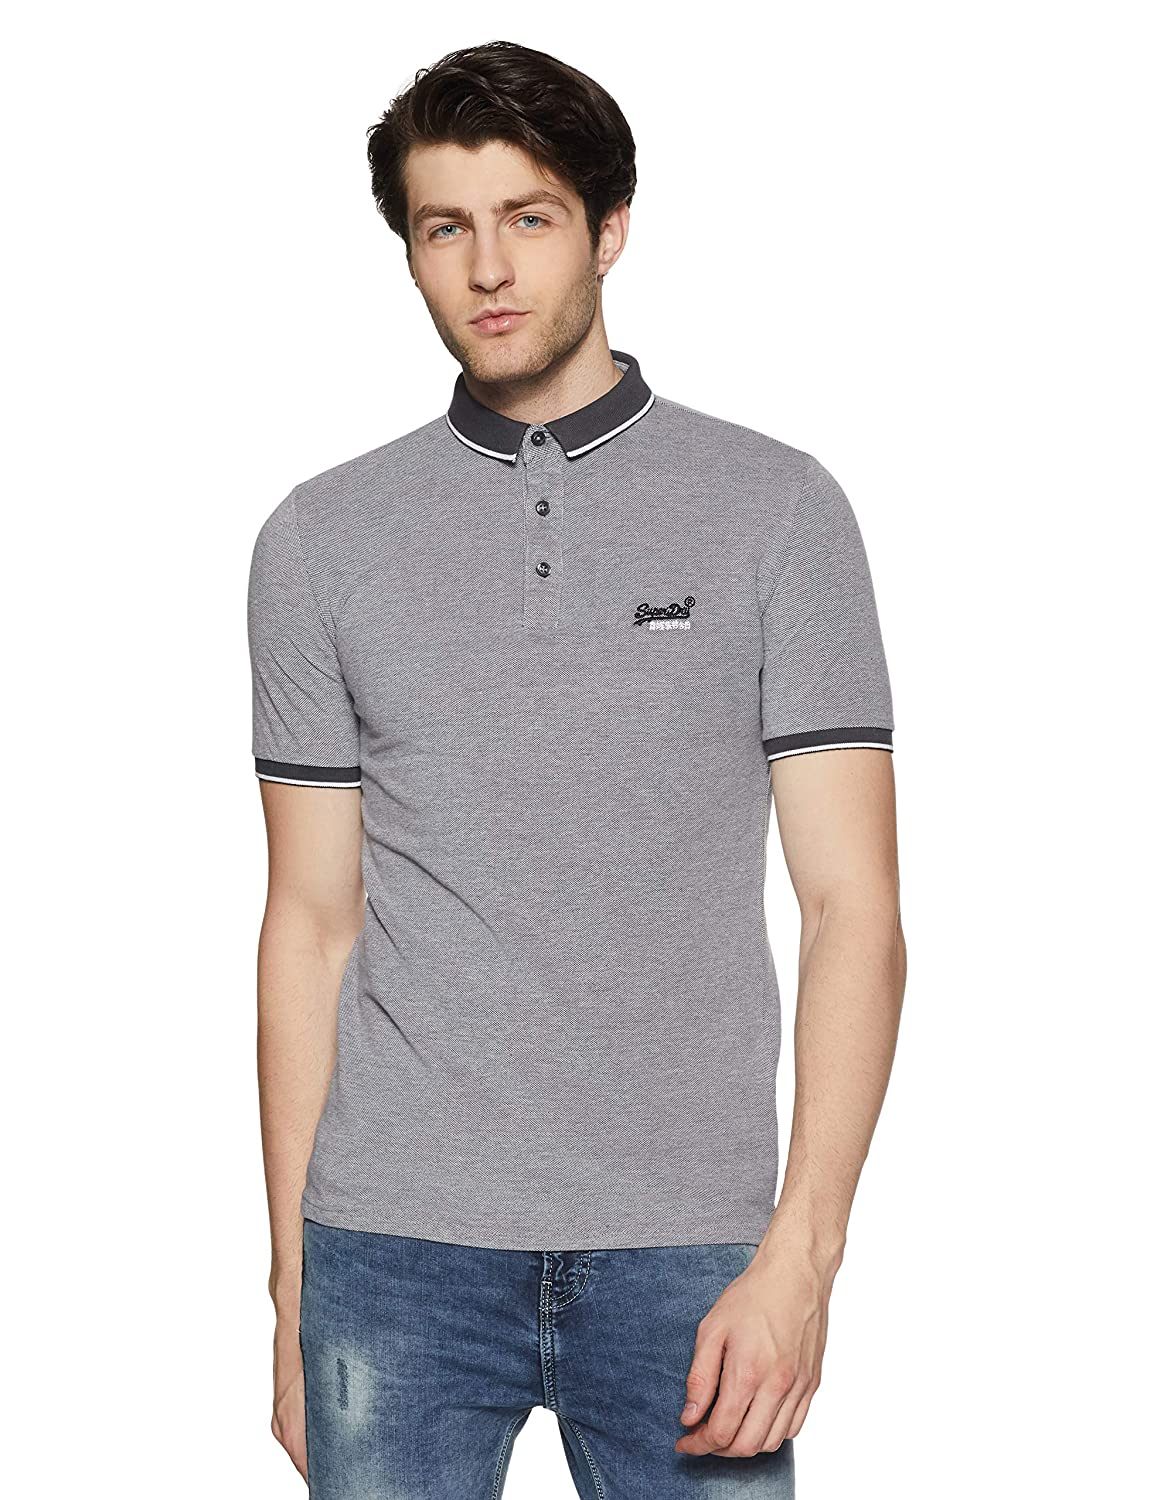 7d28dd44 Superdry Men's City Oxford Pique Polo Shirt, Grey, M at Amazon Men's  Clothing store: